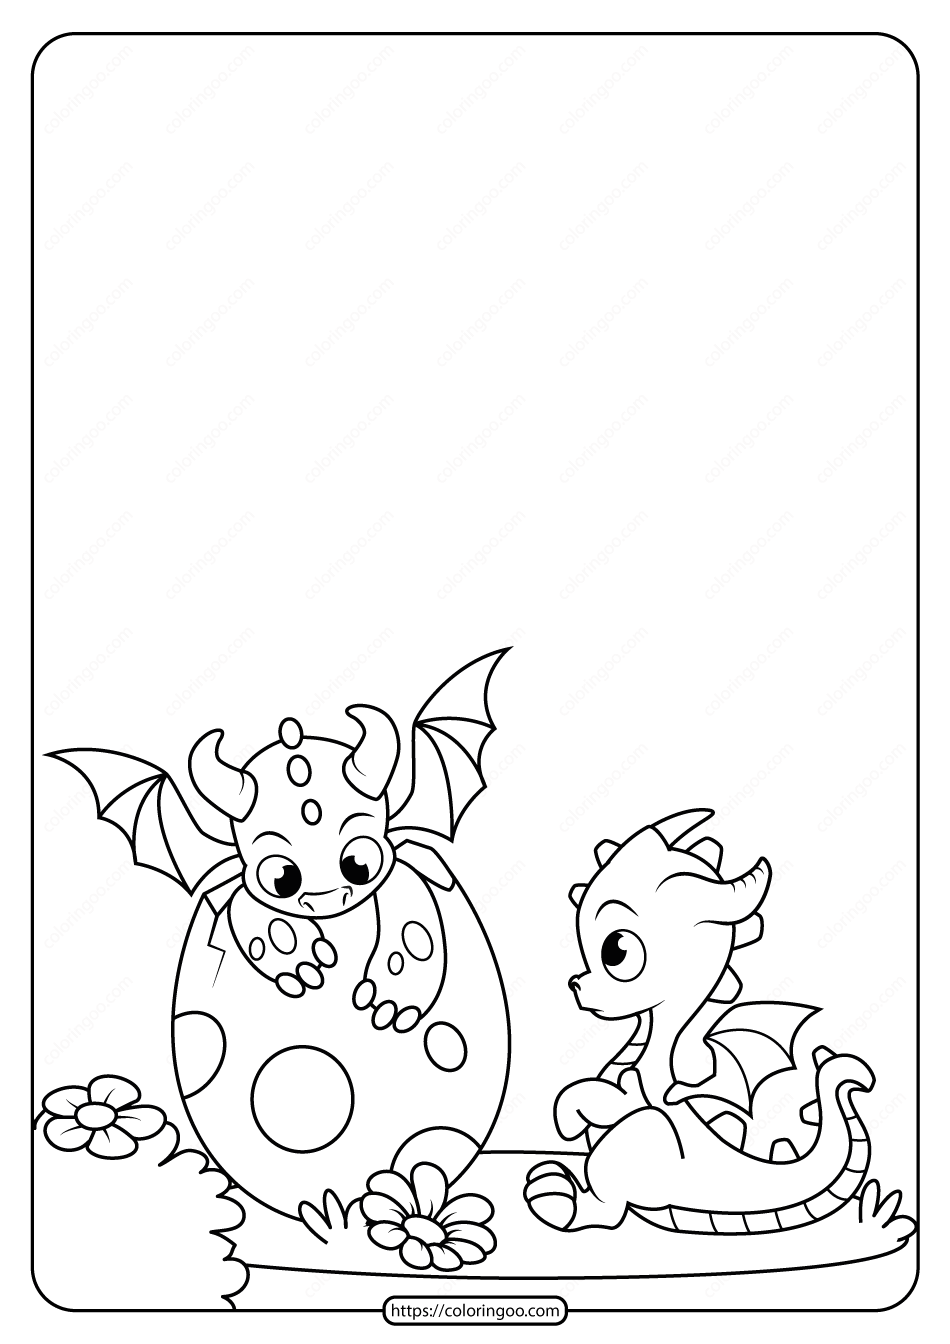 Printable Dragon Cubs Coloring Page